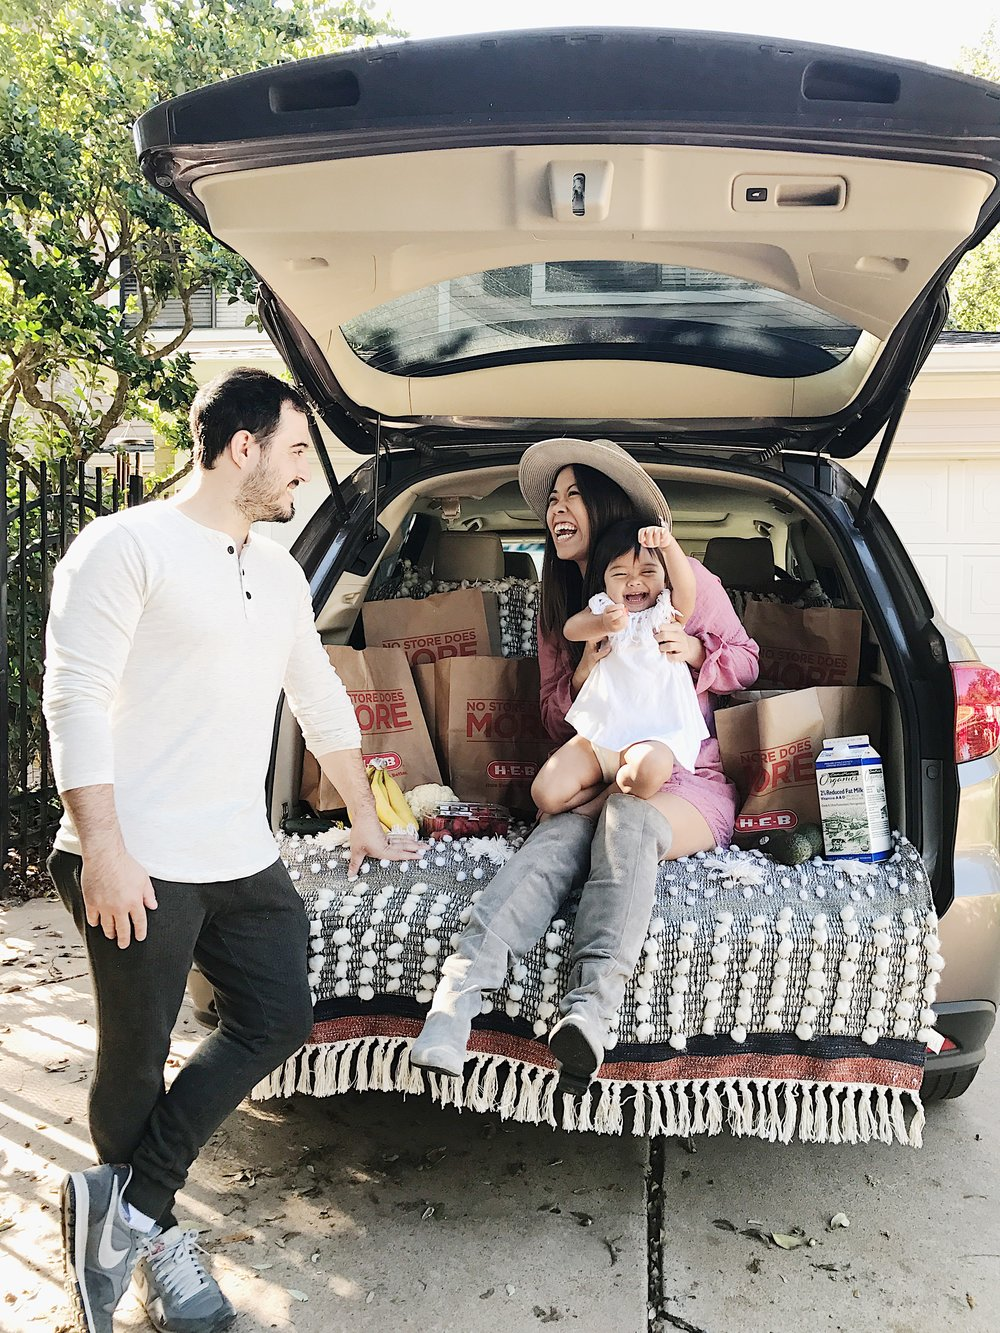 Cute SUV truck picnic photo